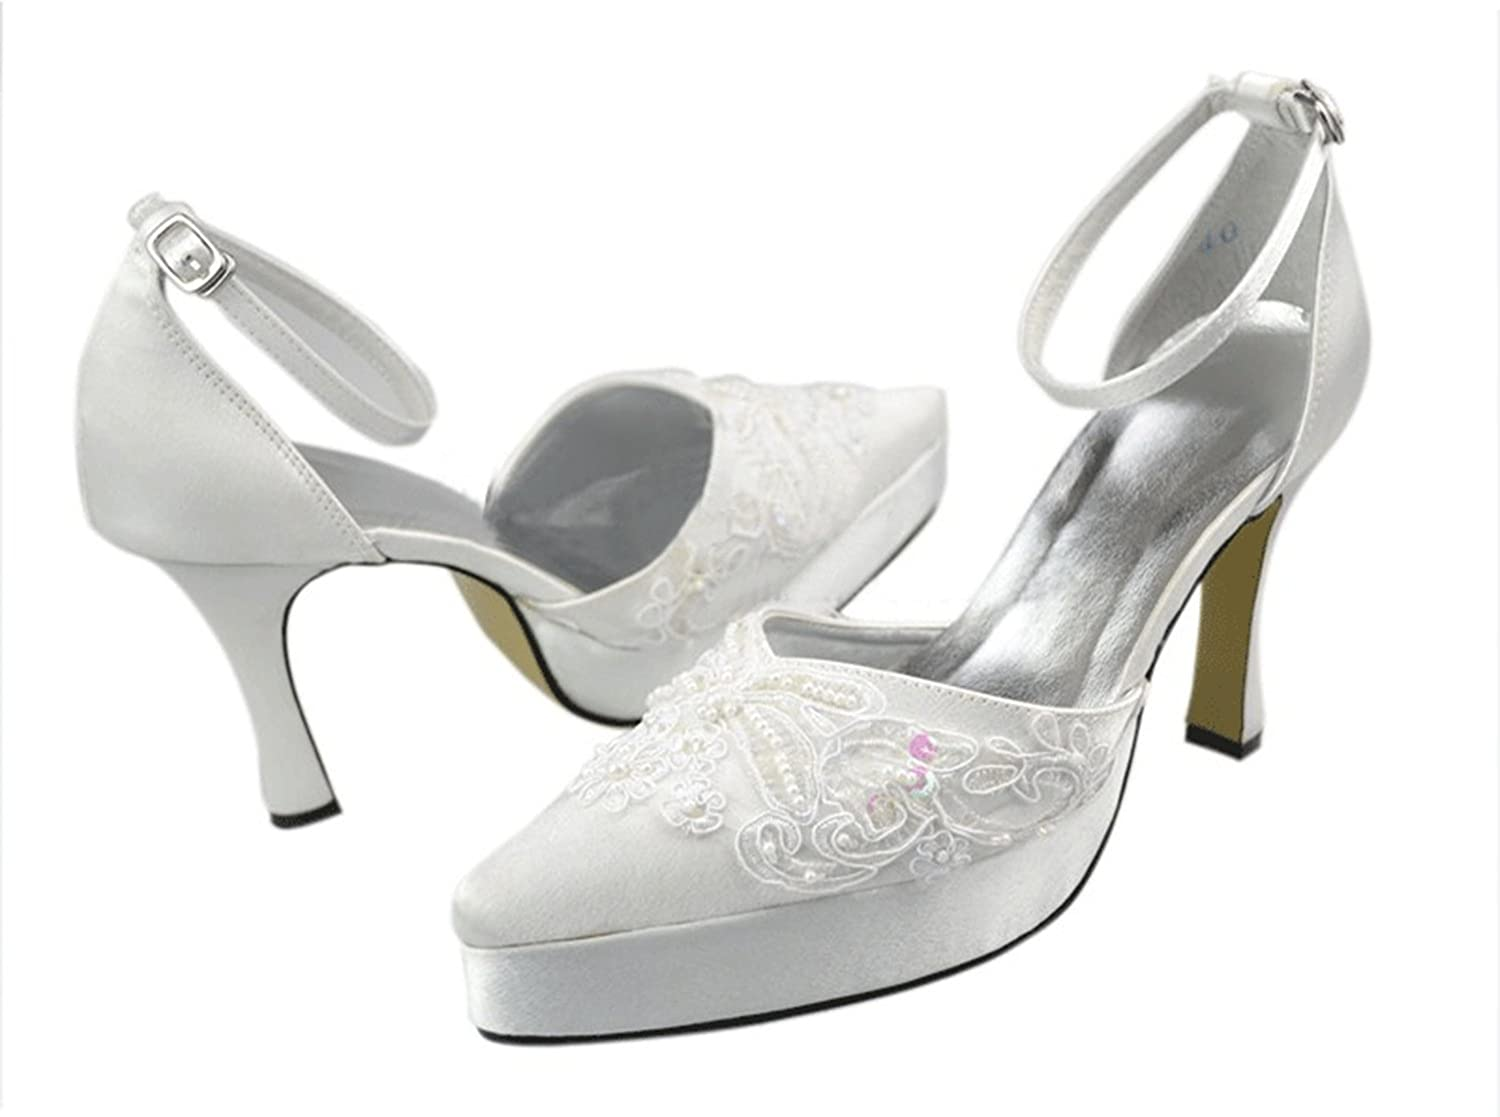 Kevin Fashion MZ1229 Women's Ankle Strap Satin Bridal Wedding Formal Party Evening Prom Sandals